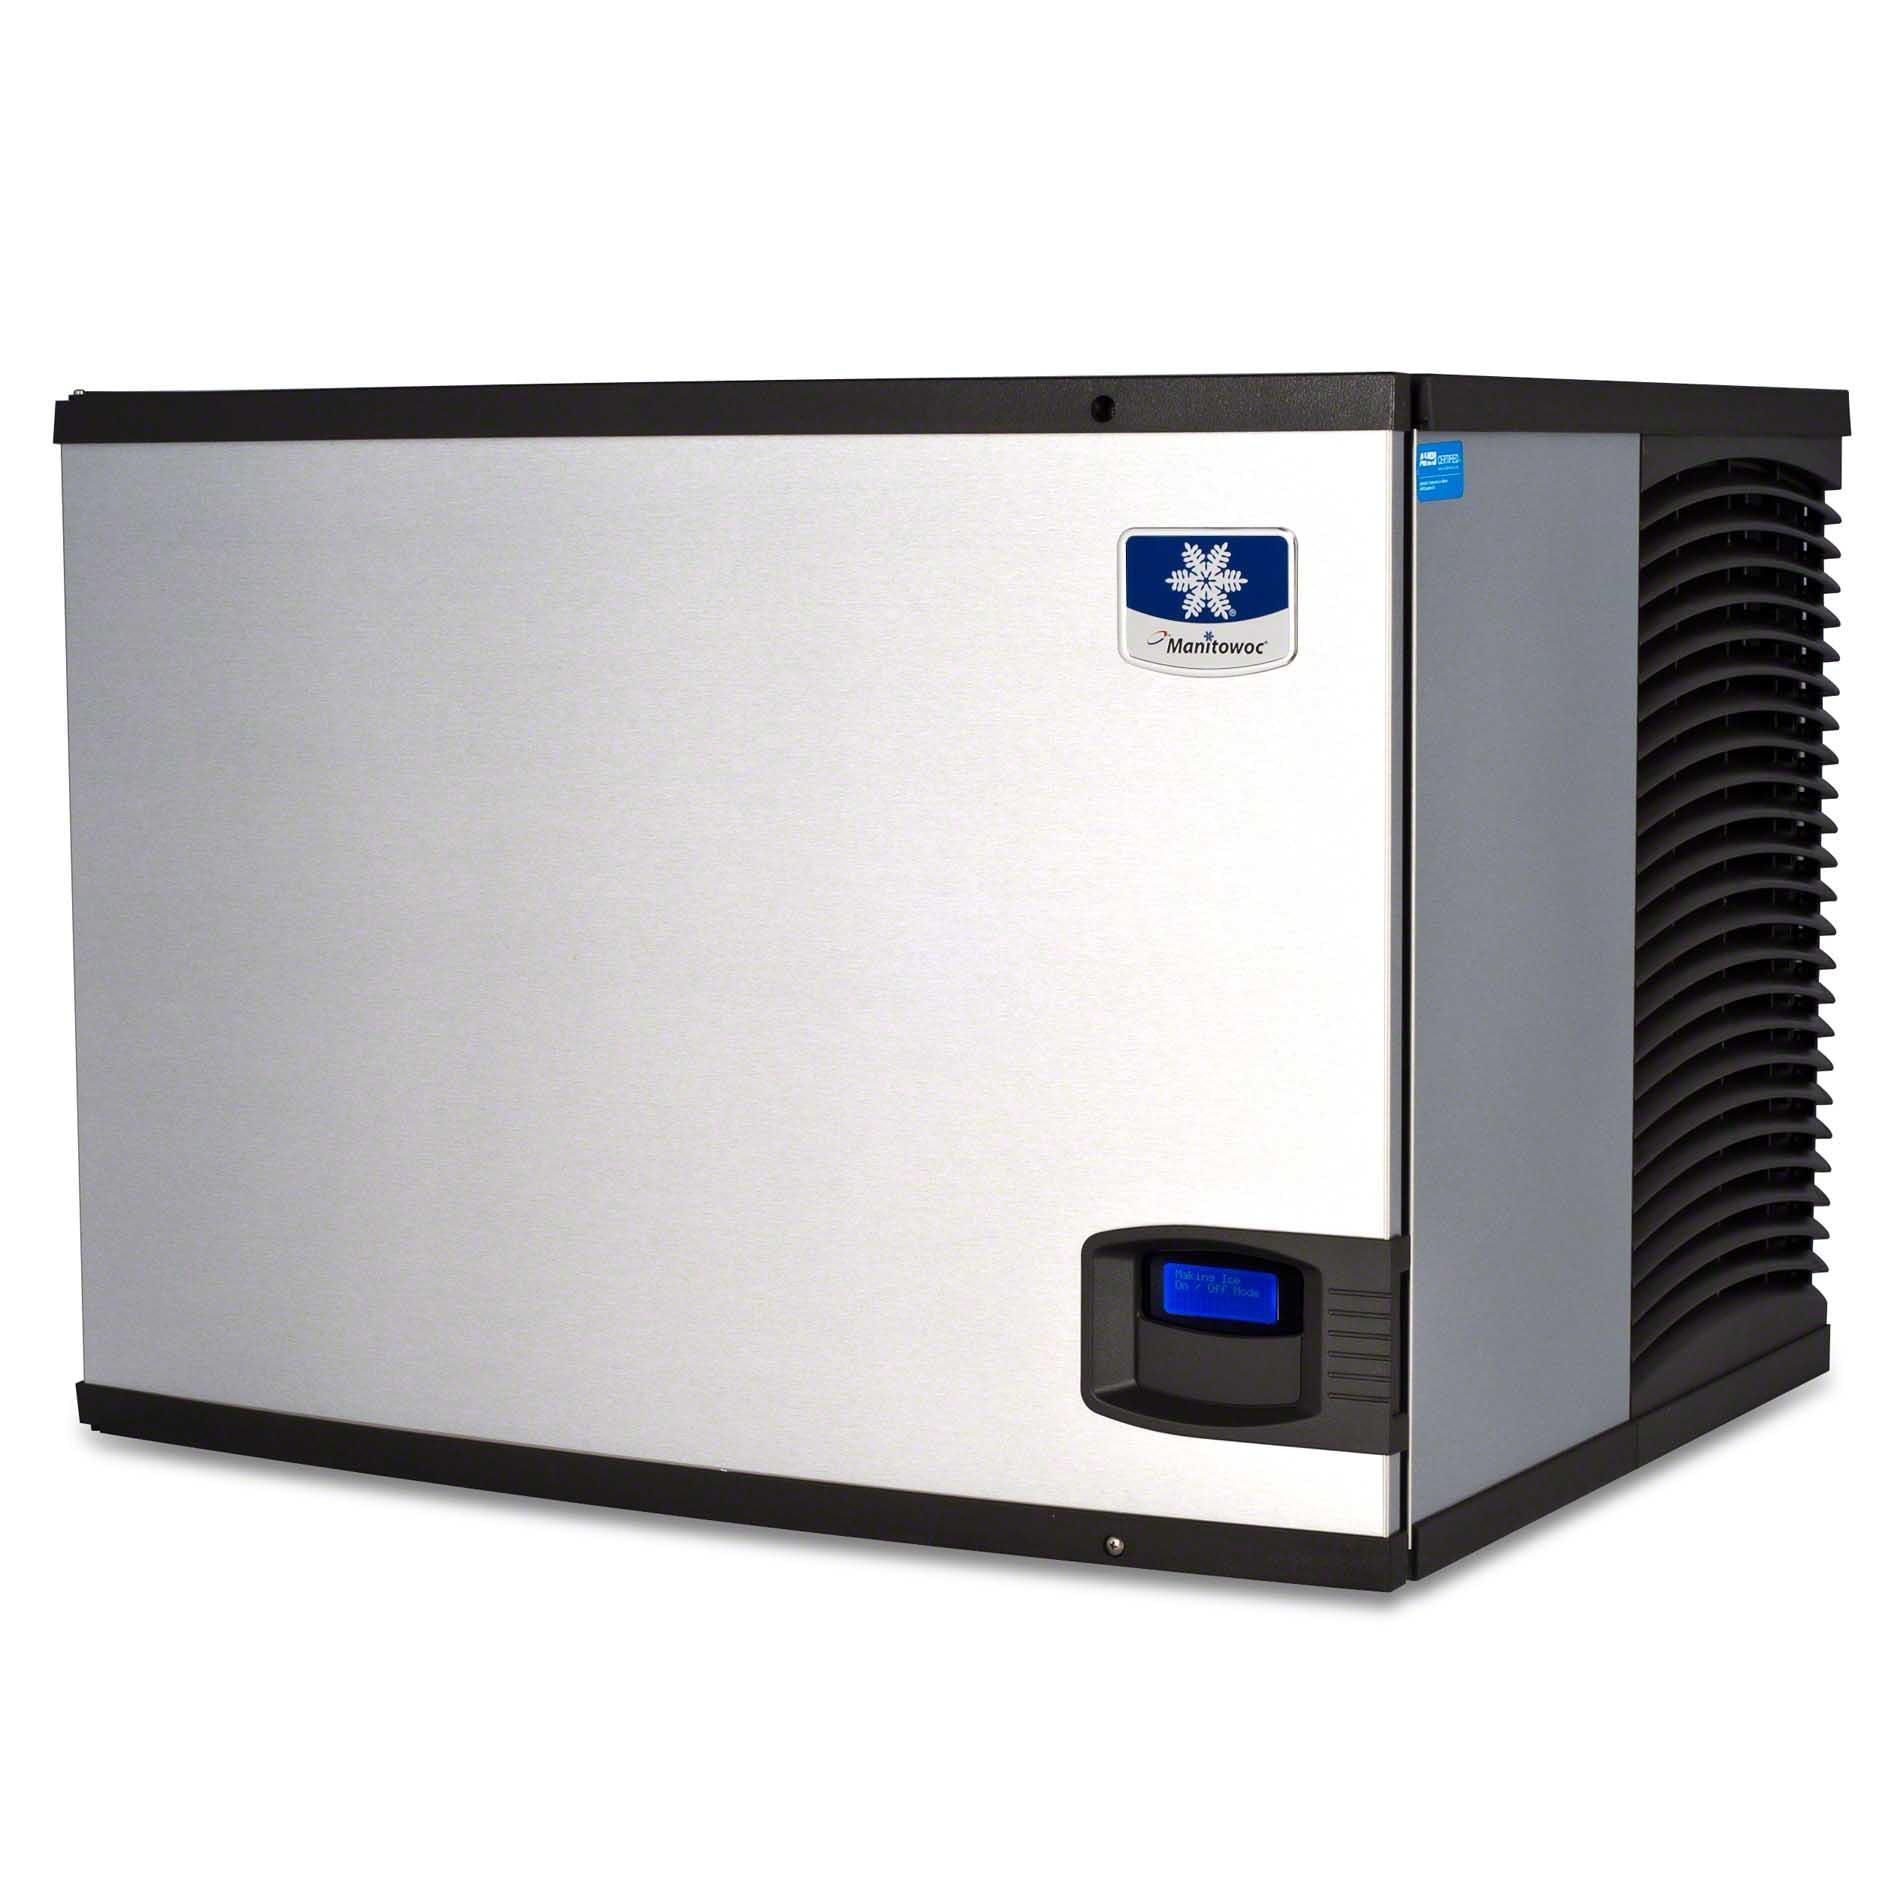 Manitowoc - ID-0453W 430 lb Full Size Cube Ice Machine - Indigo Series - sold by Food Service Warehouse